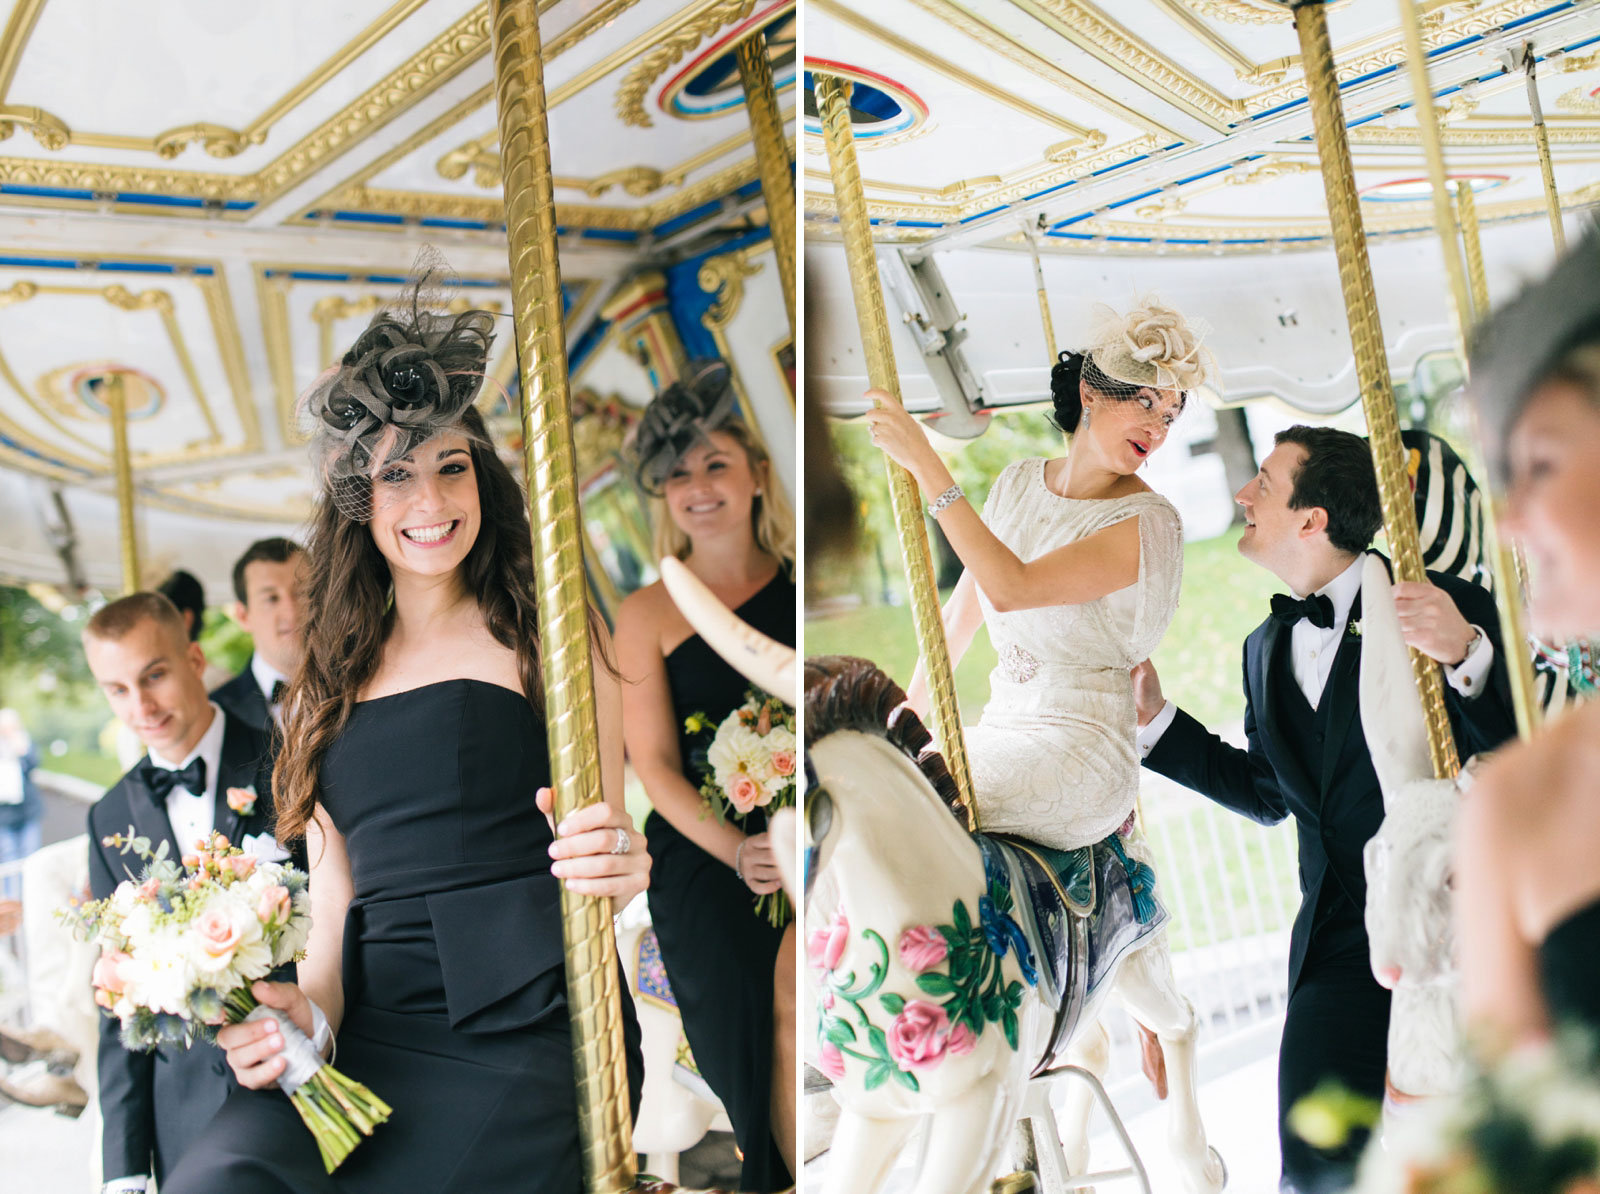 Gatsby-inspired bridal party take a ride on a carousel at boston common during portrait session